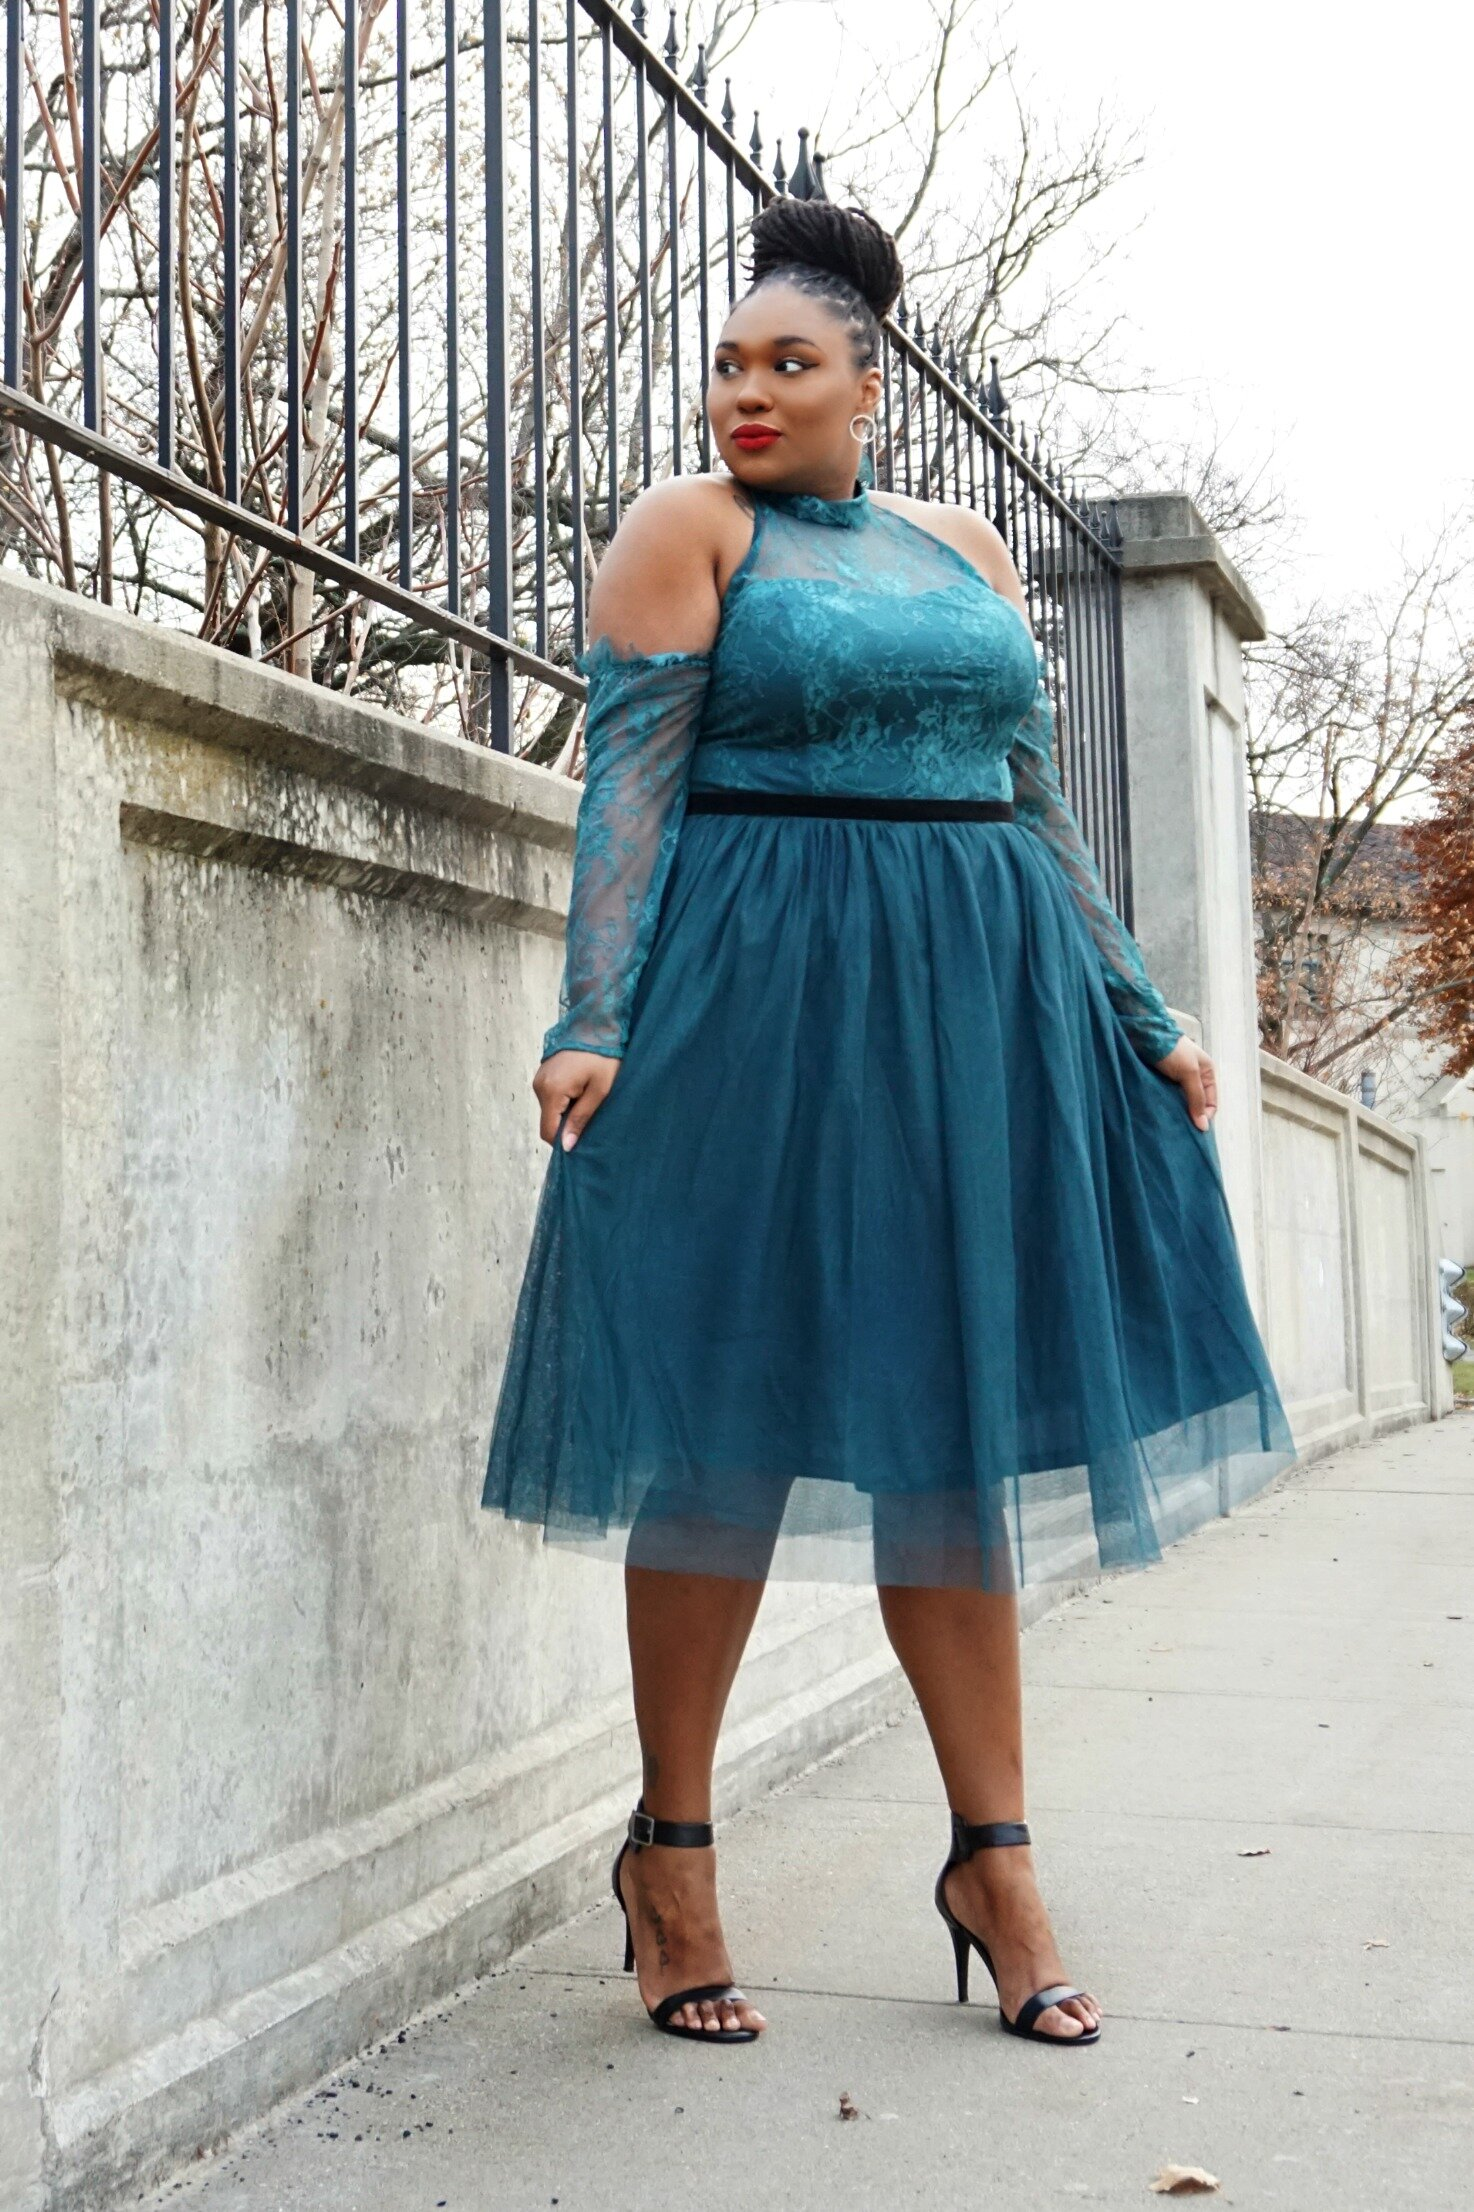 Tulle & Lace| Holiday Week 2017